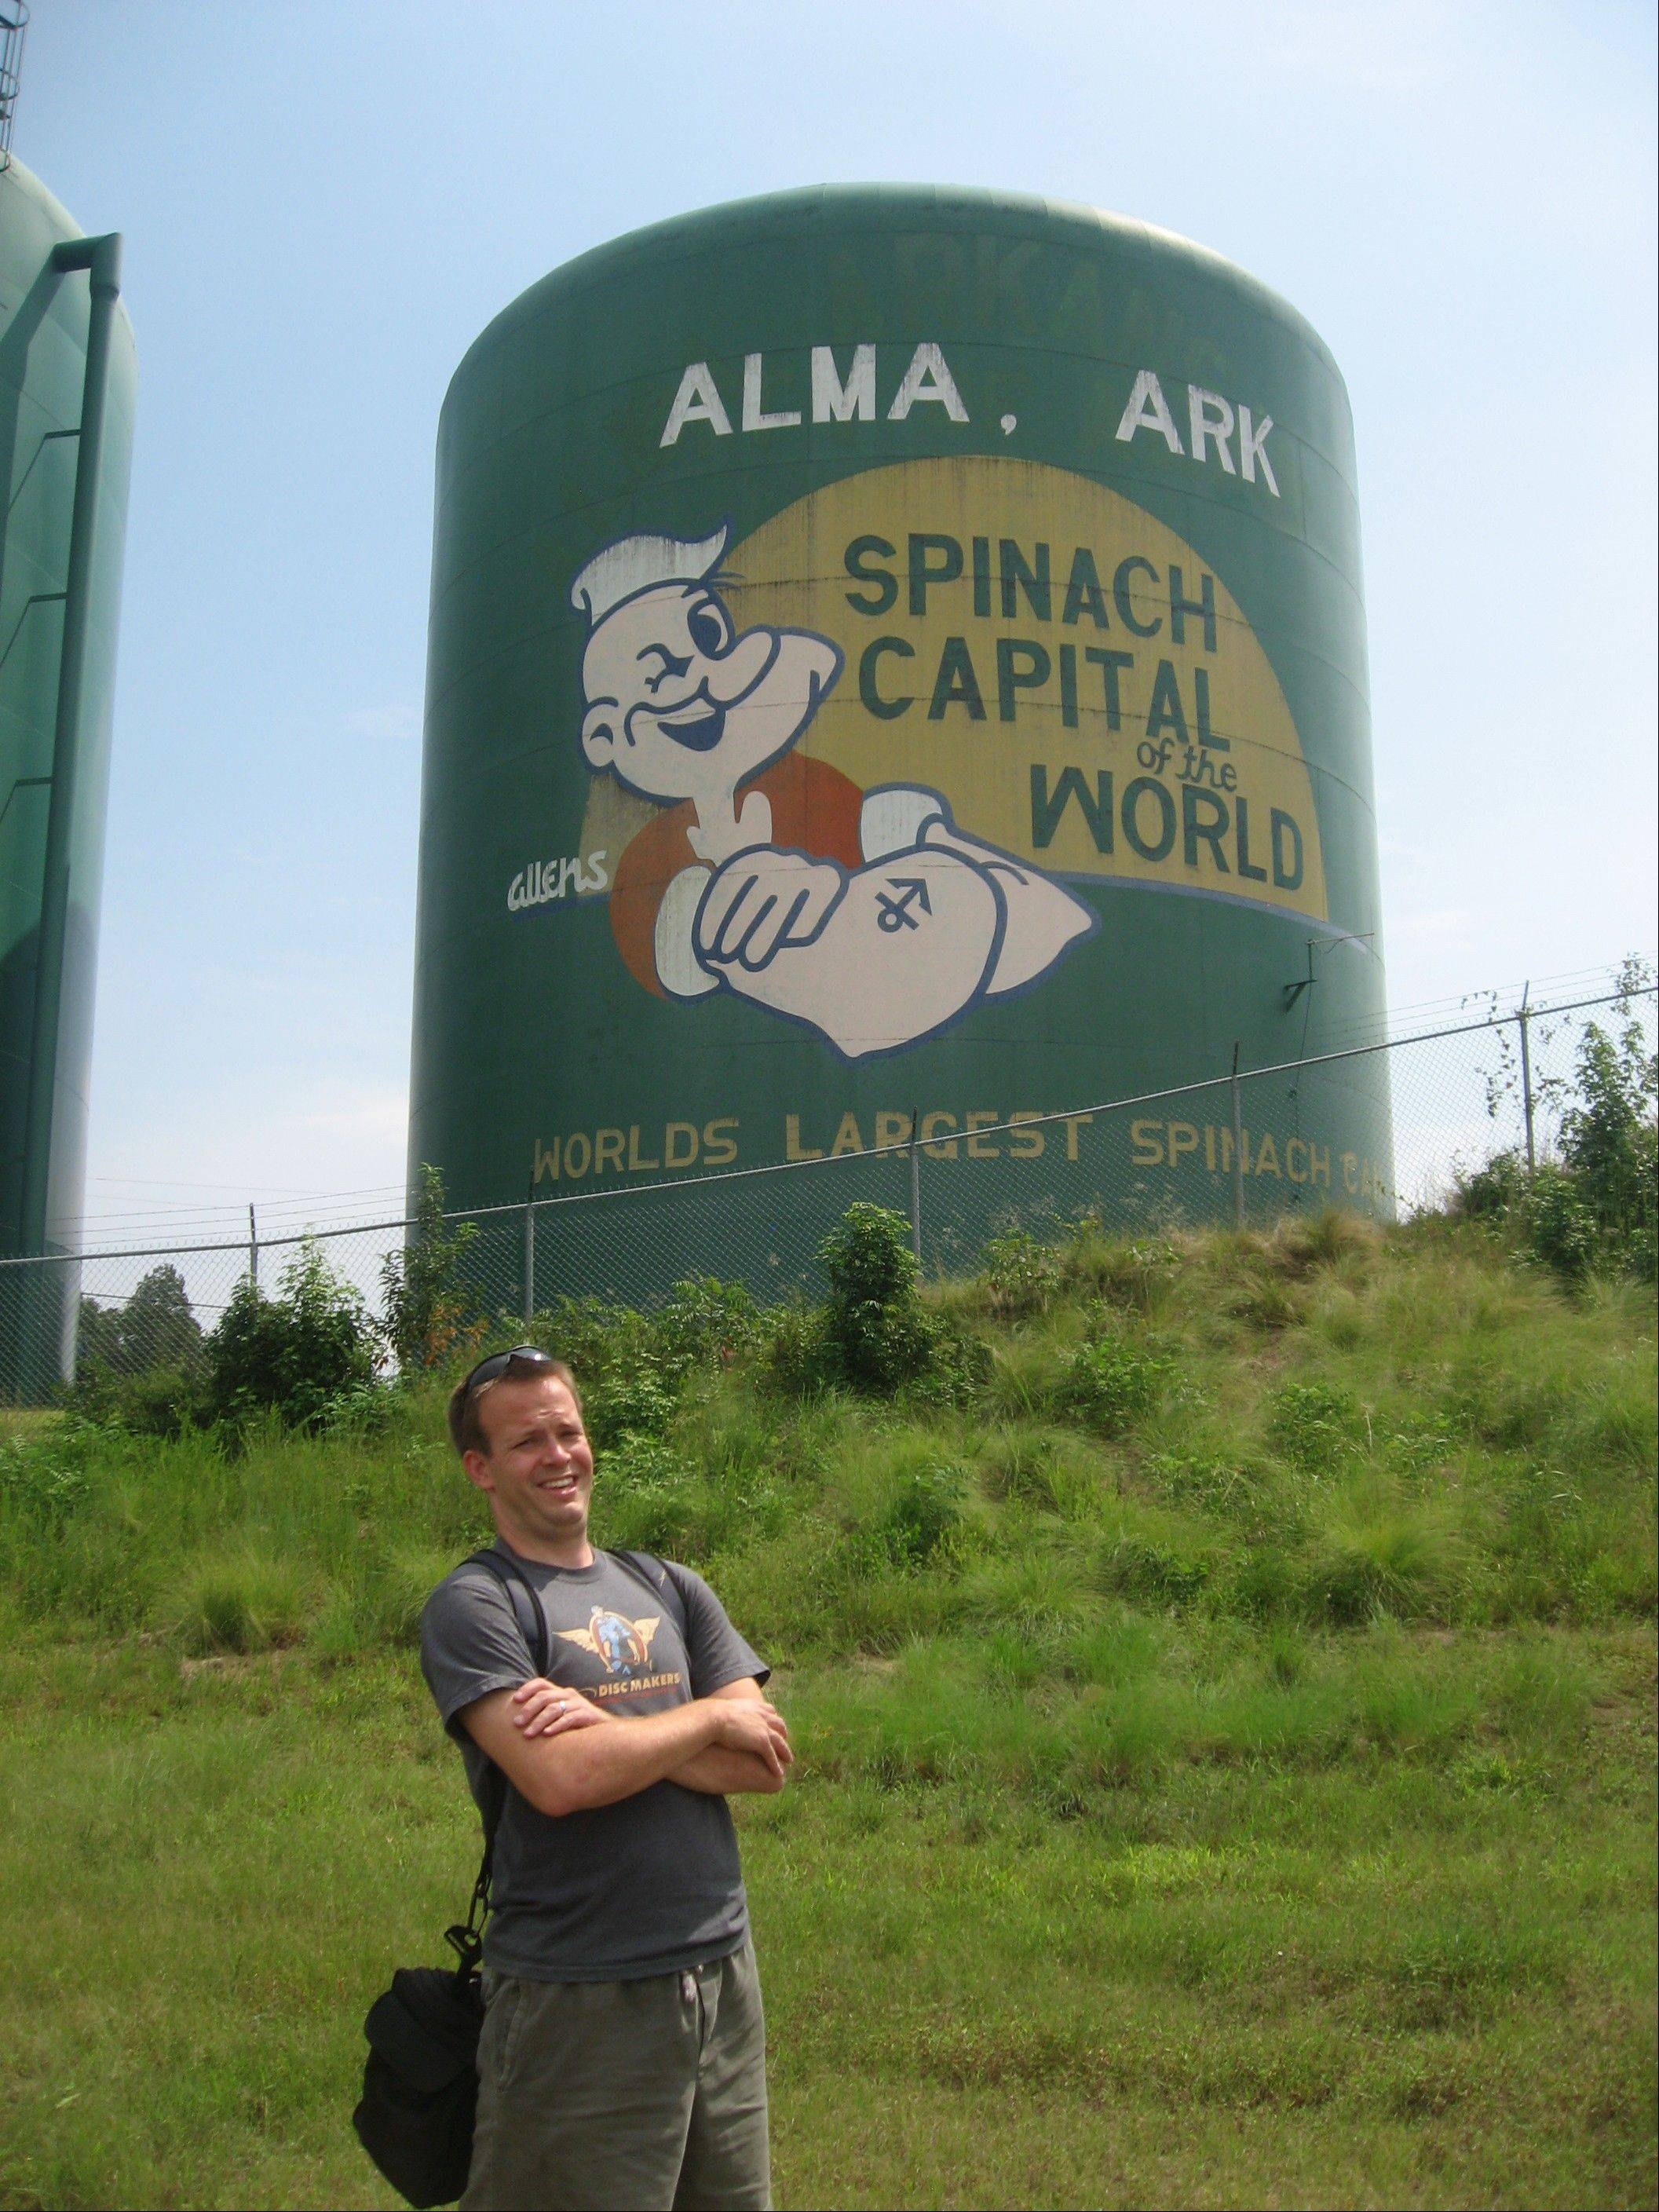 Luke Anderson stands in Alma, Ark., the 31st state he visited. Anderson, who has now visited a total of 39 states, is on a quest to play disc golf in all 50 states.